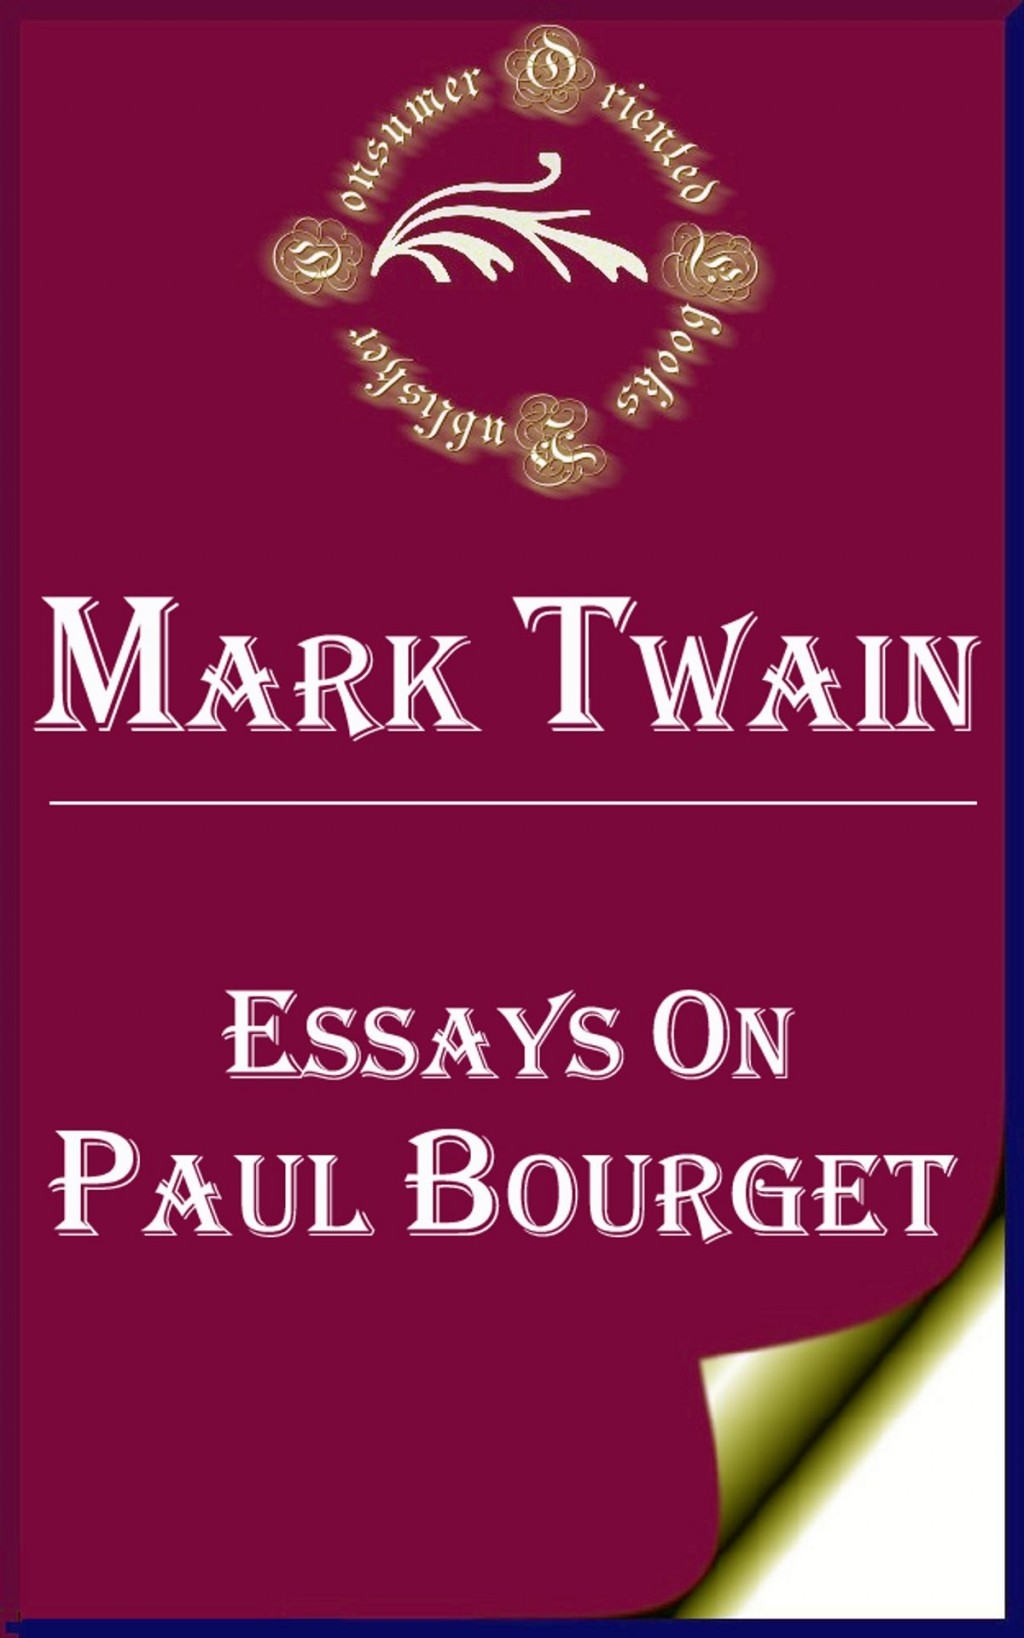 022 Mark Twain Essays Essay Example On Paul Bourget Surprising Pdf Writing Nonfiction Large